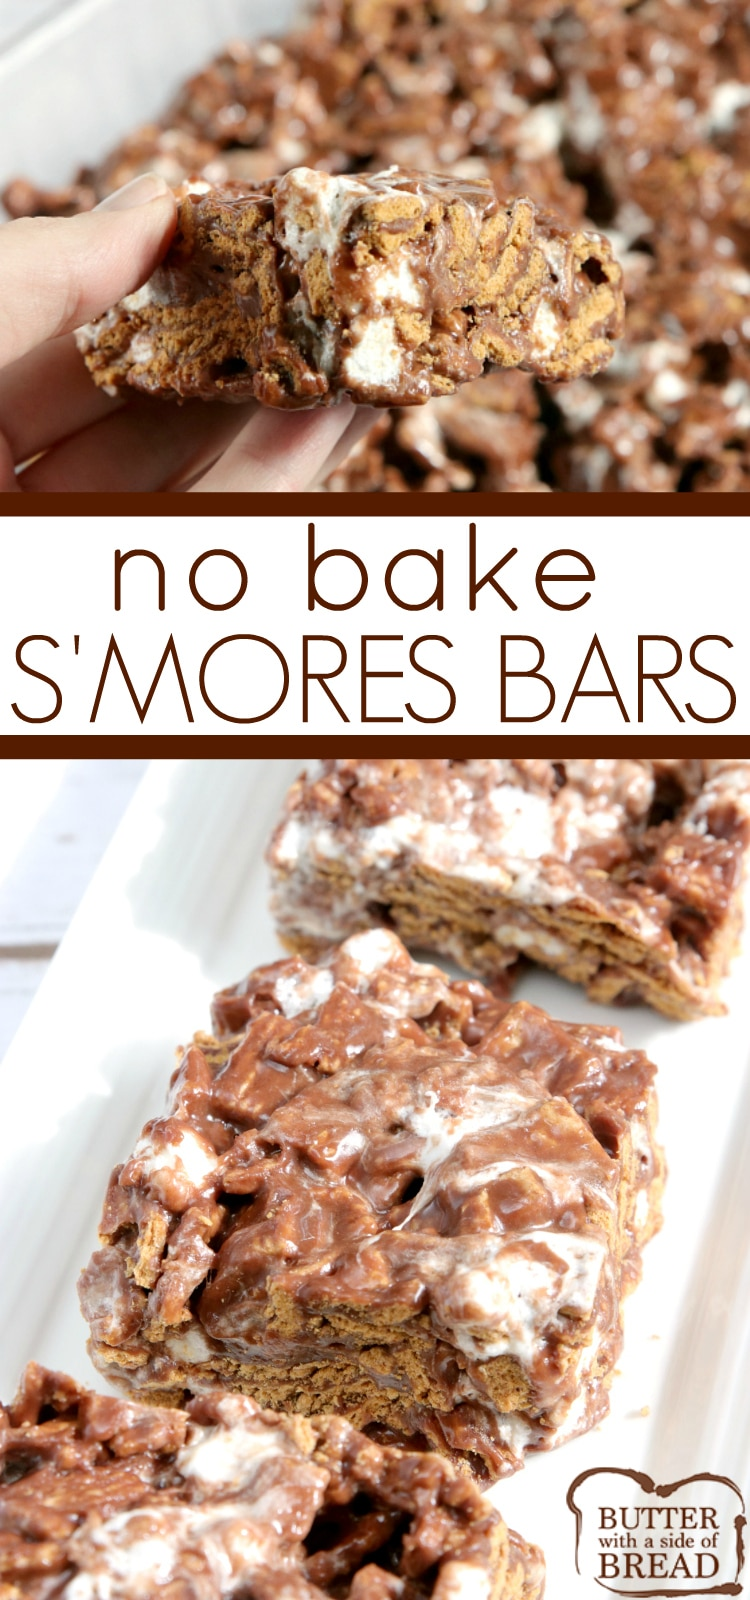 No Bake S'mores Bars are made with Golden Grahams, melted chocolate and marshmallows. This delicious no bake dessert recipe comes together in just a few minutes and tastes just like s'mores, without the mess or the campfire!